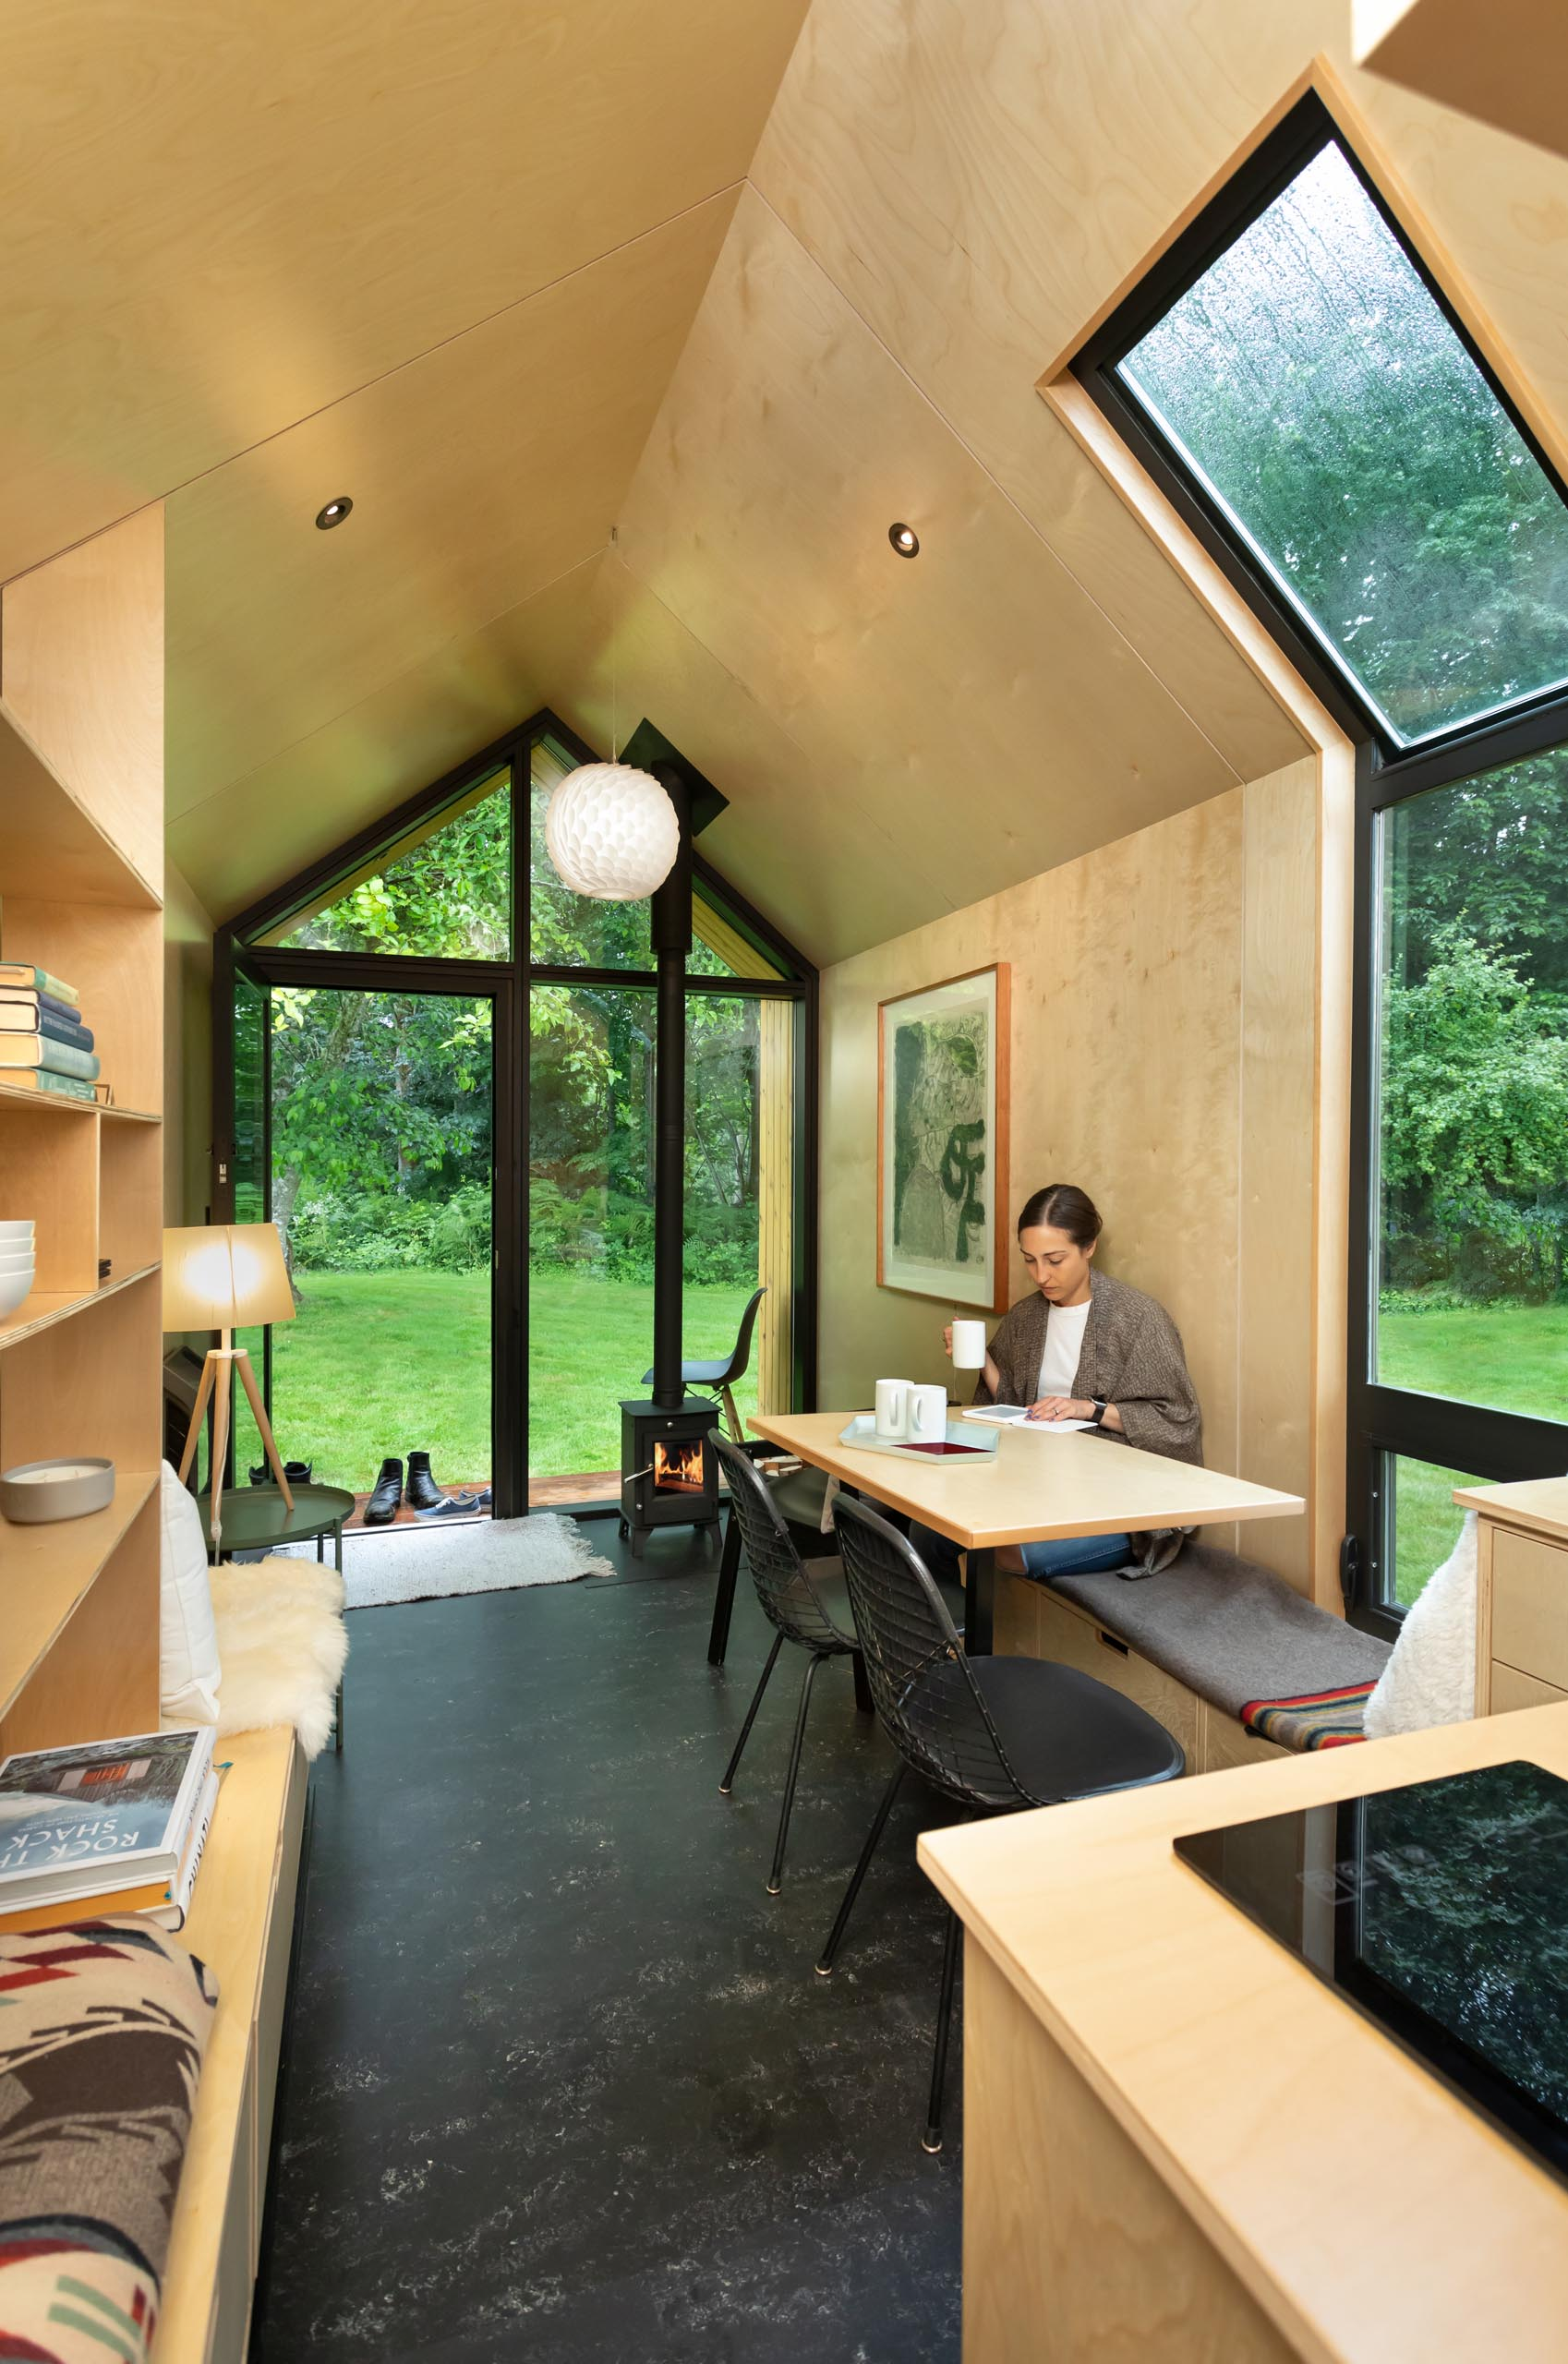 A modern tiny home with built-in benches, a wood burning stove, matte black linoleum flooring, and a small porch.